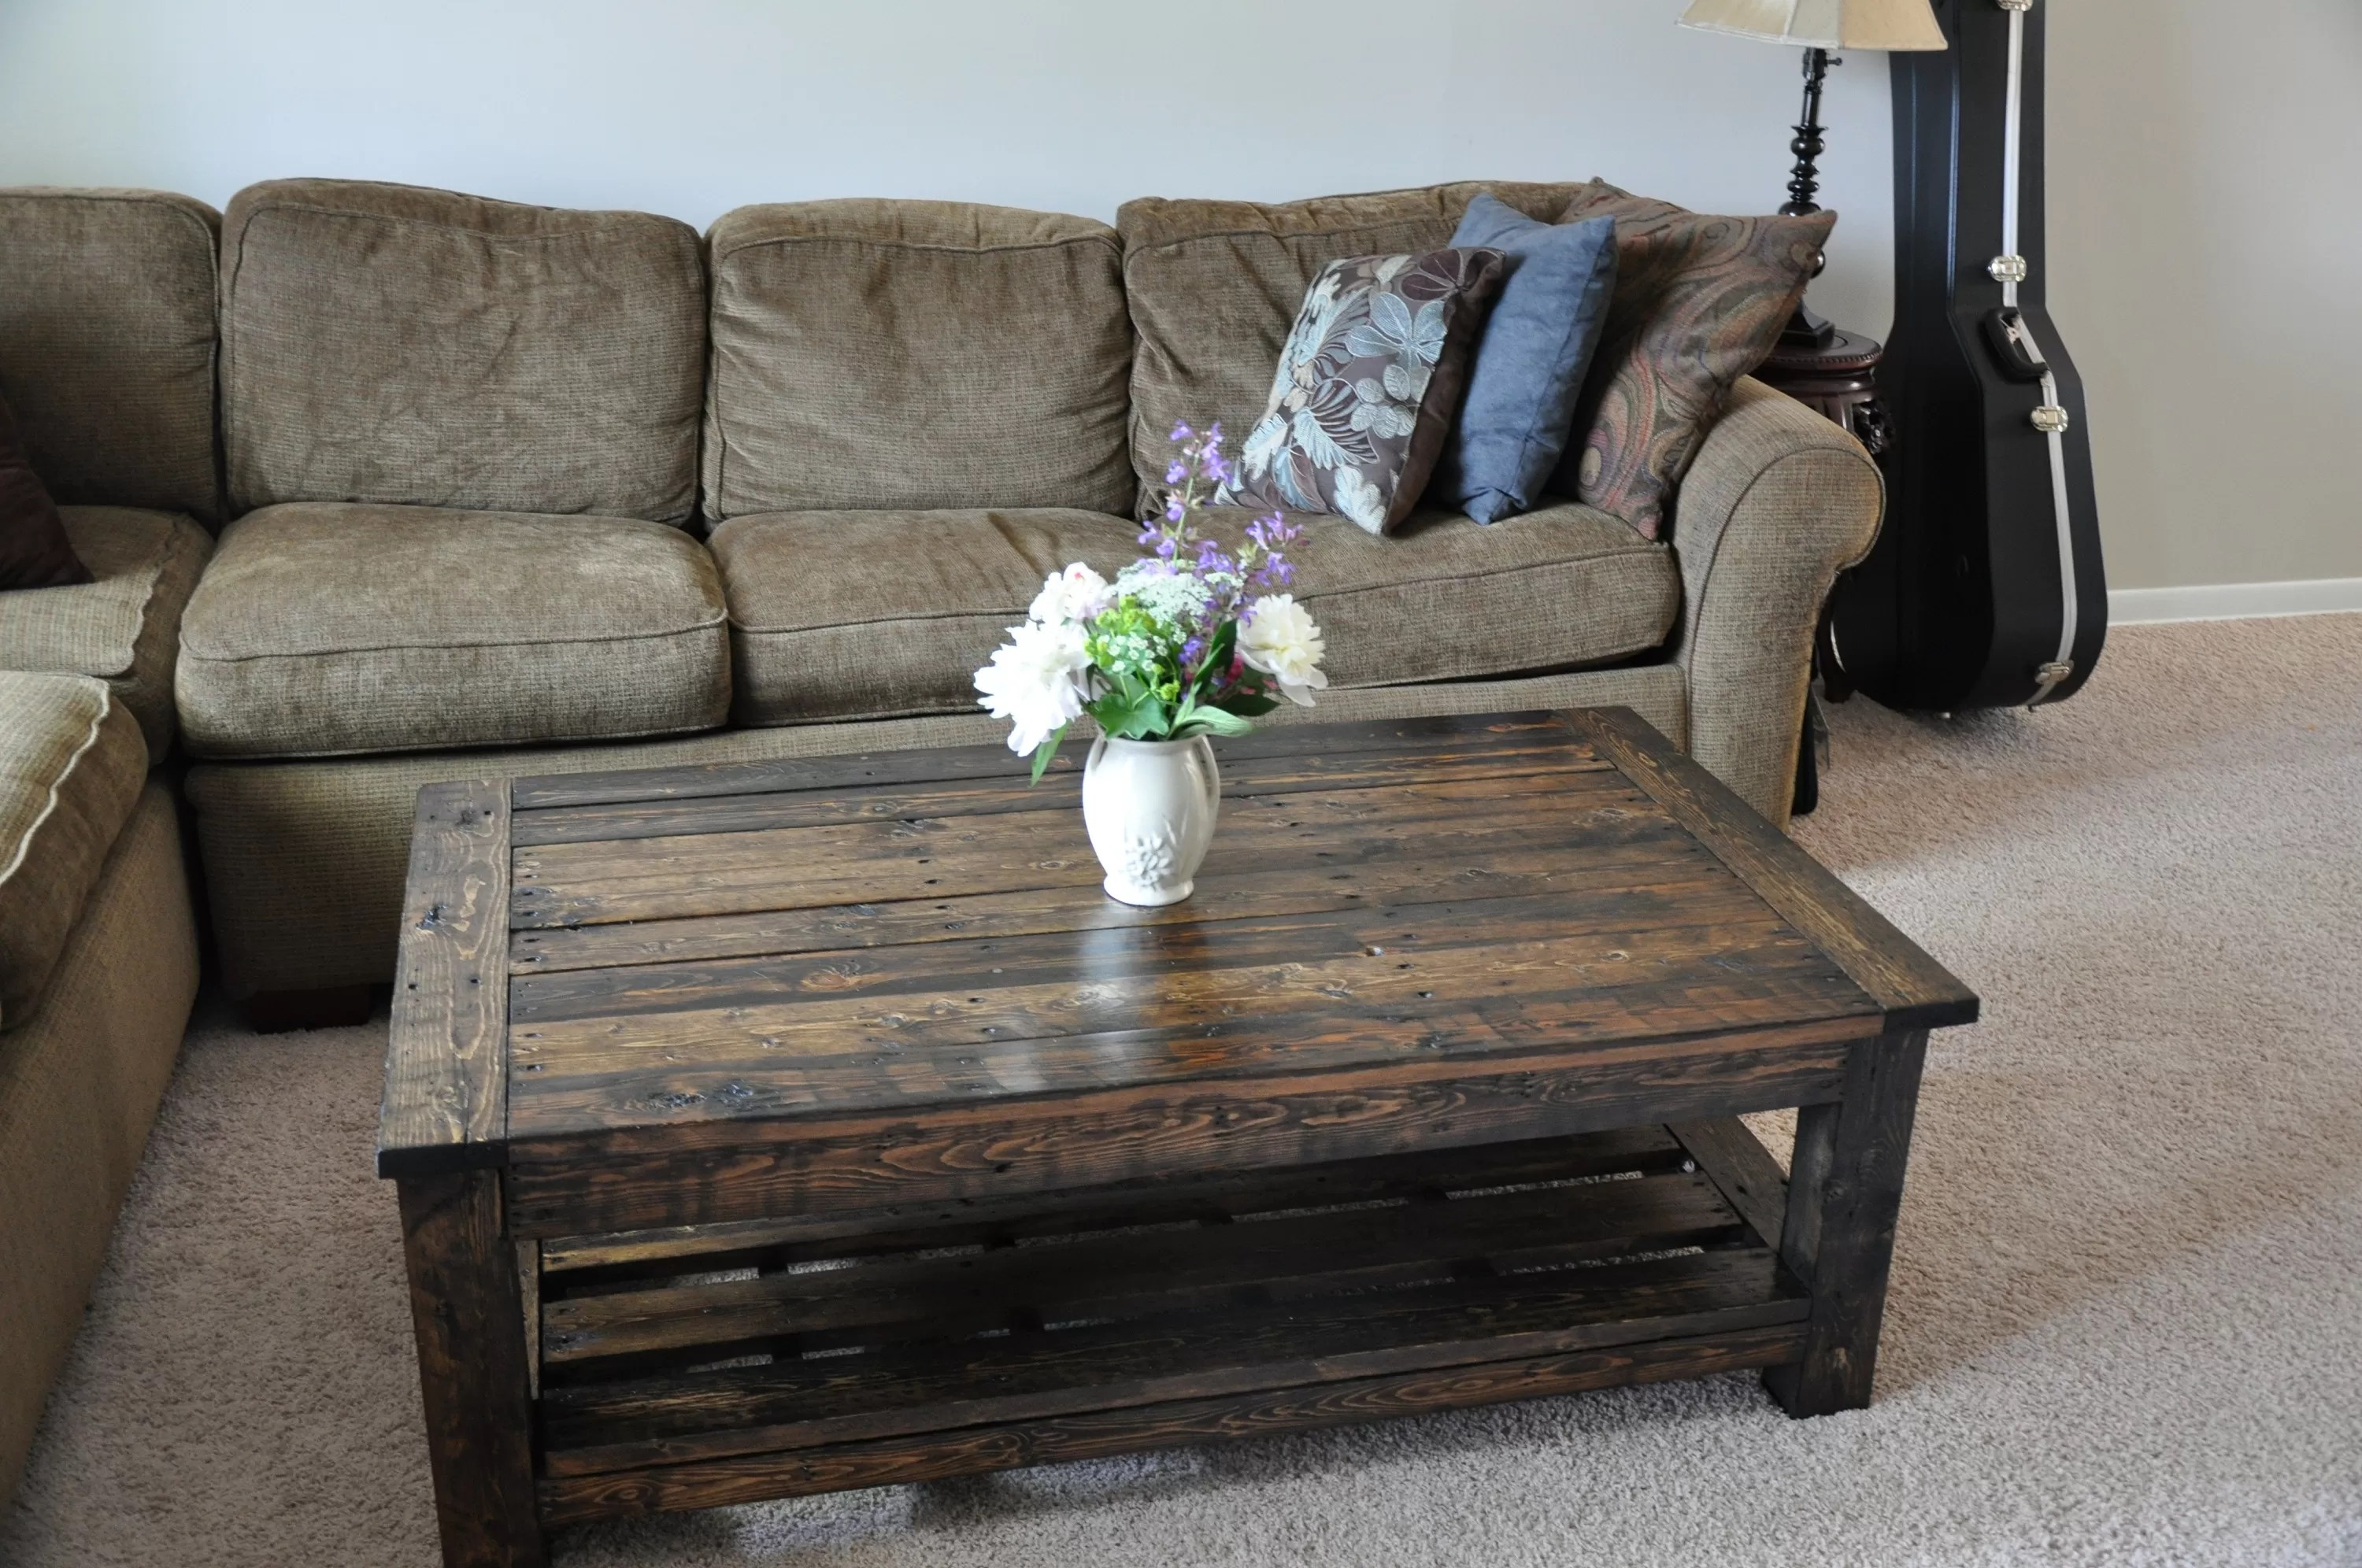 Diy Table With Pallets 18 Diy Pallet Coffee Tables Guide Patterns